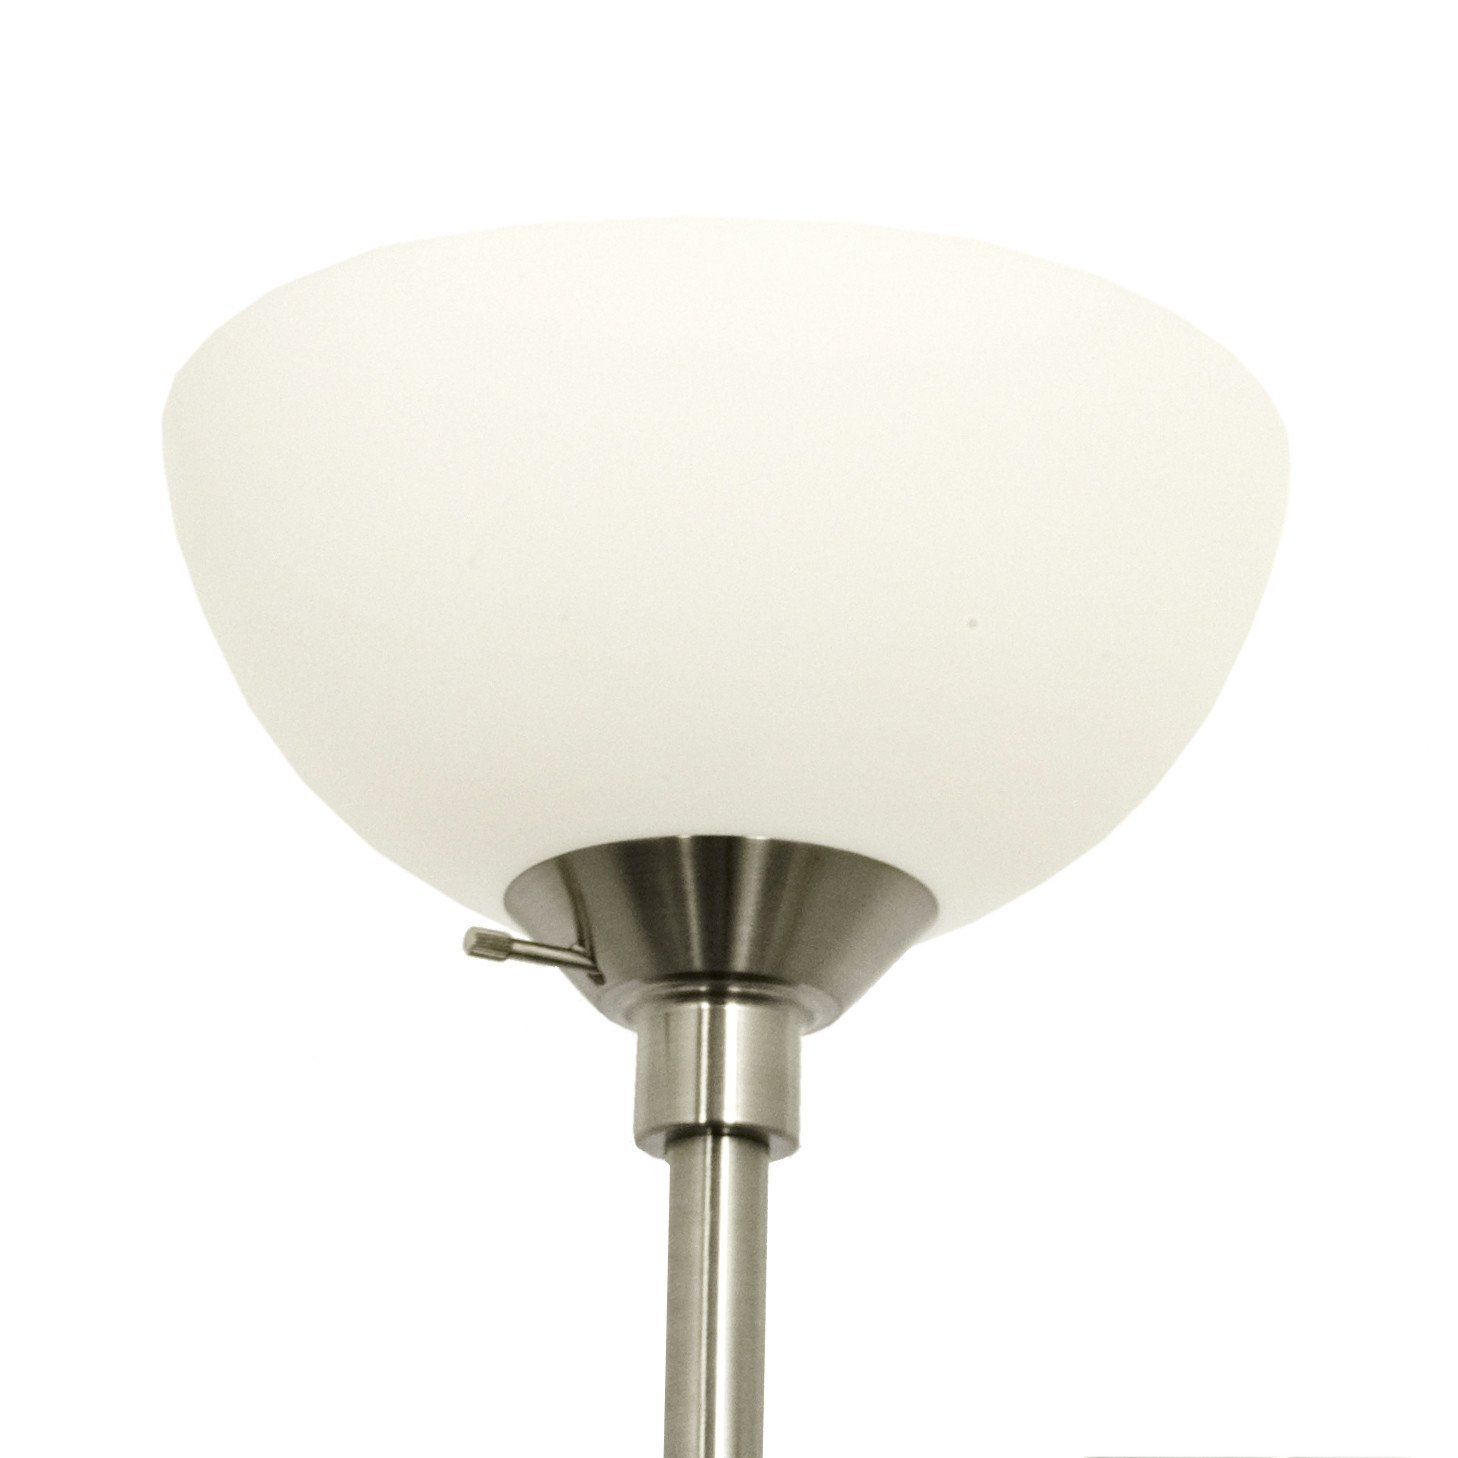 Light Accents Replacement Shade for 6185-72 (Acrylic Shade only) by Lightaccents (Image #1)